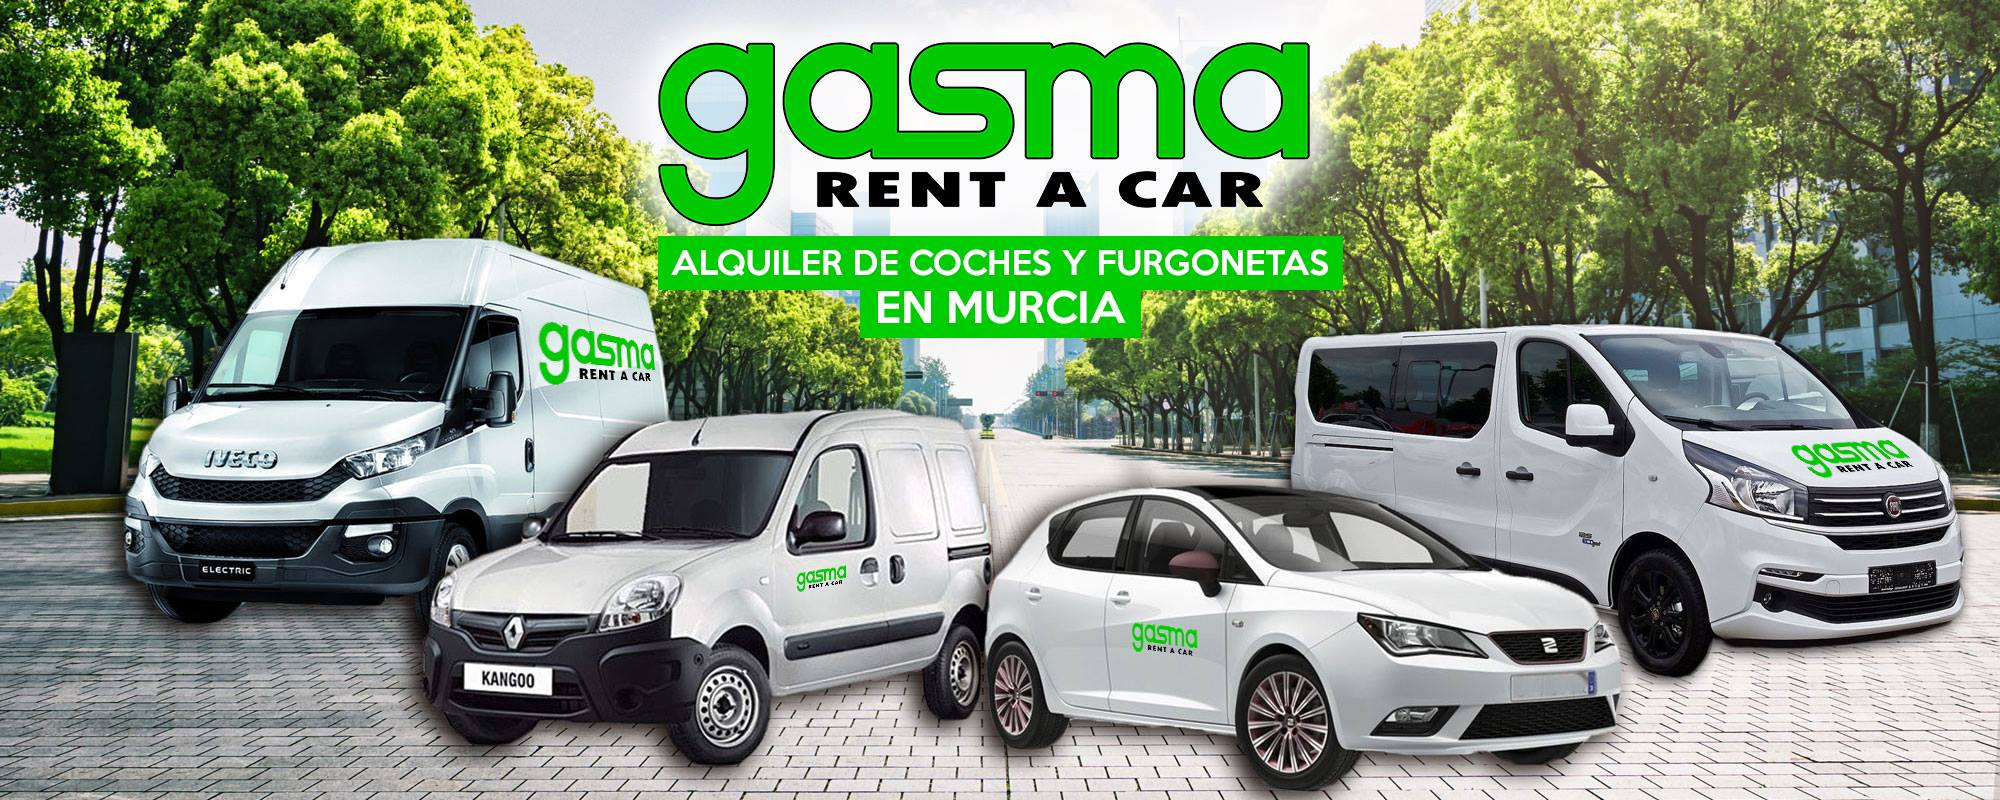 gasma rent a car flota